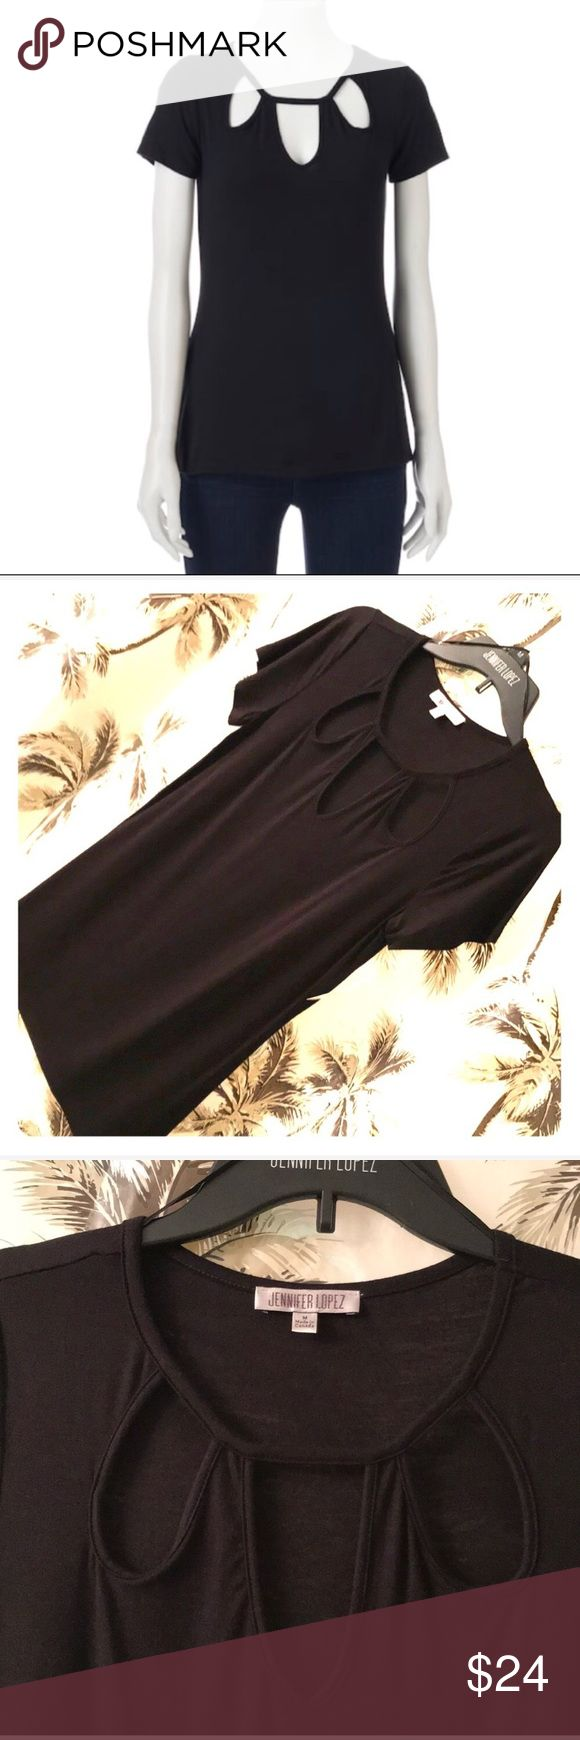 Jennifer Lopez black key hole tee NWT Jennifer Lopez fitted black tee with triple key hole at neck line. Super sexy with skinny jeans and heels or boots or for a sophisticated look wear with a pencil skirt and blazer. 95% rayon 5% spandex. Ultra stretchy and very form fitting. Machine wash cold and dry flat. Jennifer Lopez Tops Tees - Short Sleeve